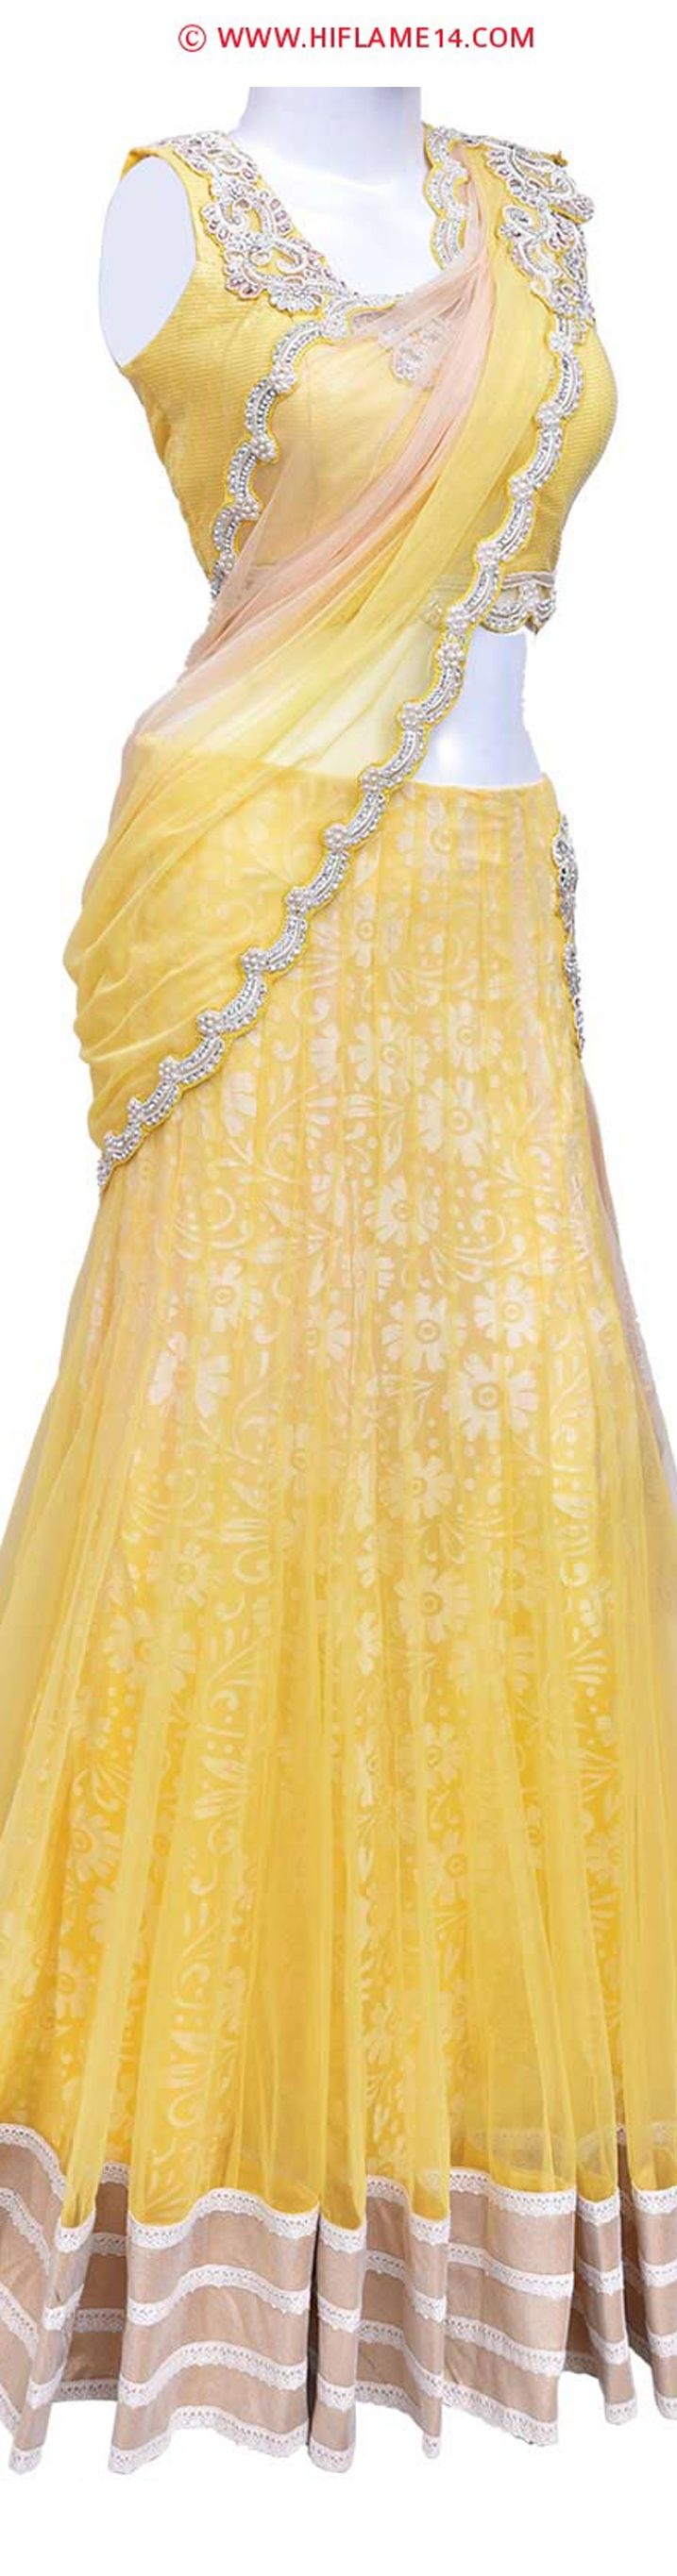 yellow dress design are